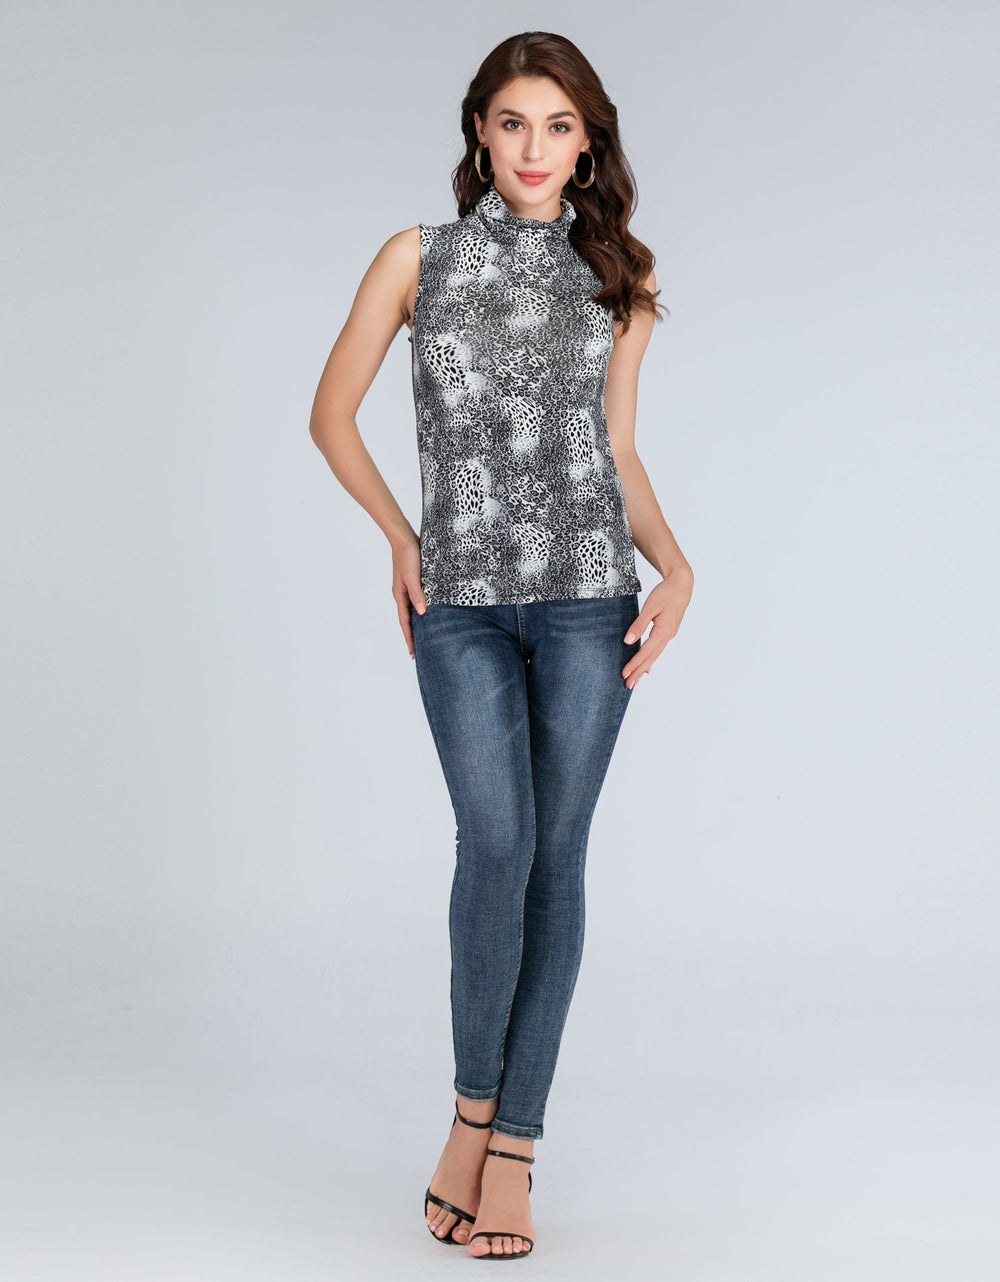 Sleeveless Cheetah Print Top